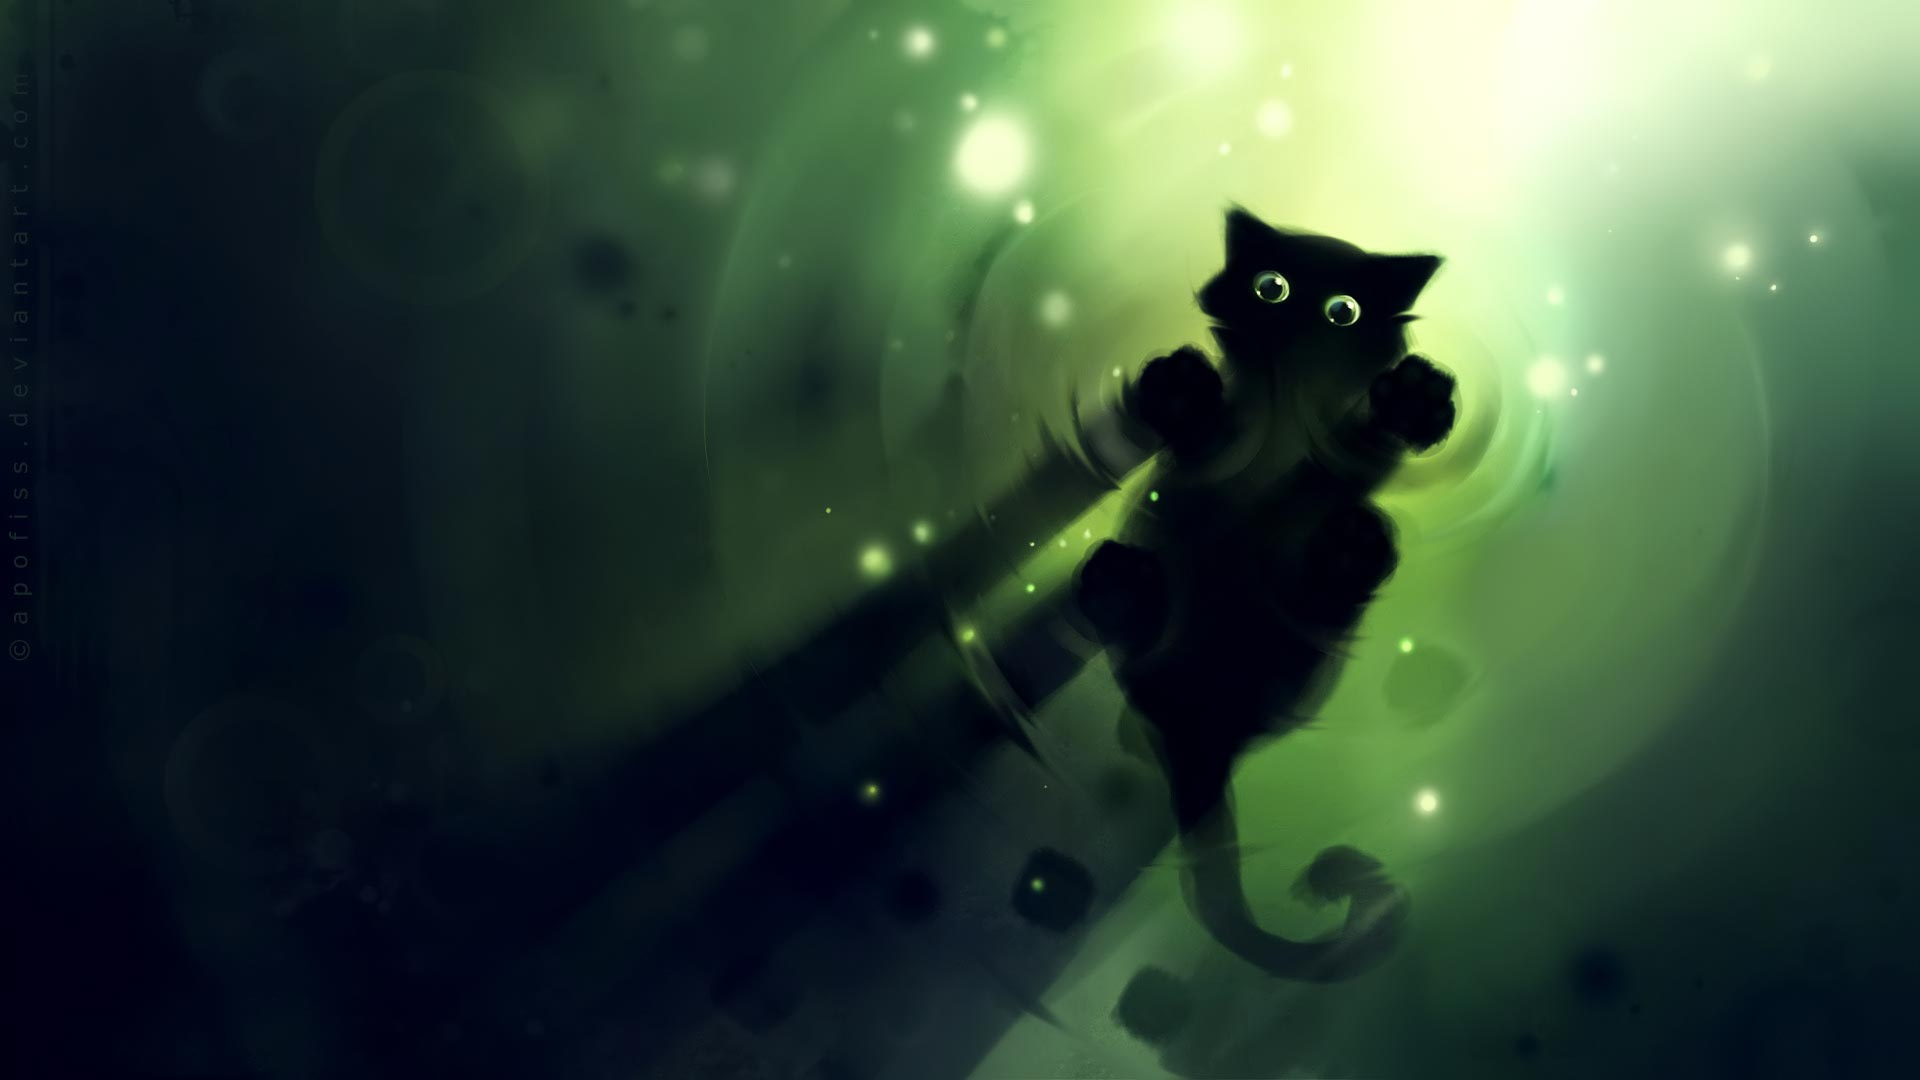 wallpaper desktop kitten nocturnal 1920x1080